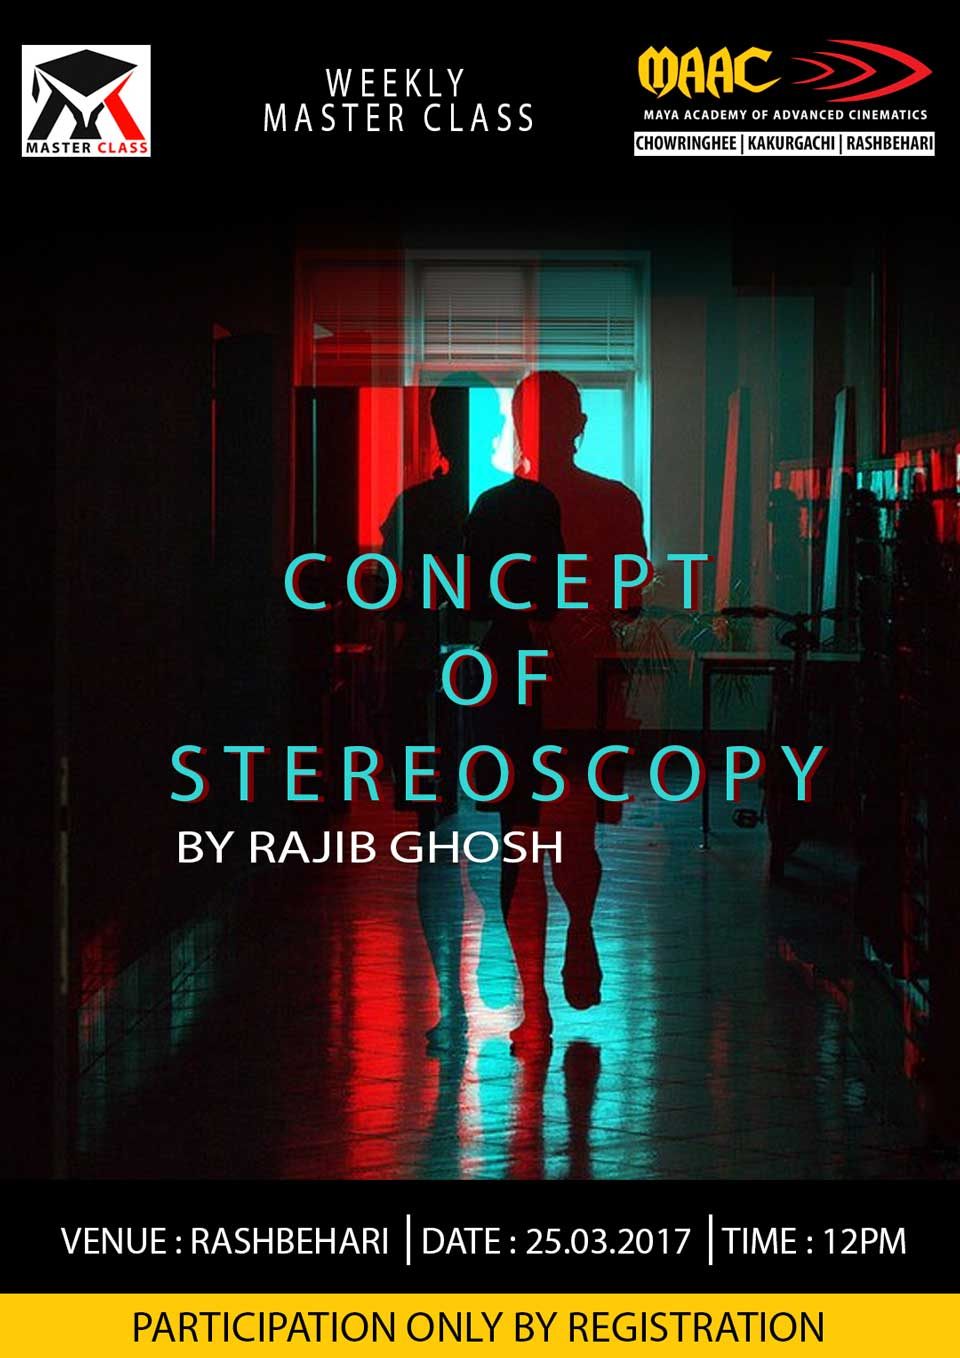 Weekly Master Class on Concept of Stereoscopy - Rajib Ghosh